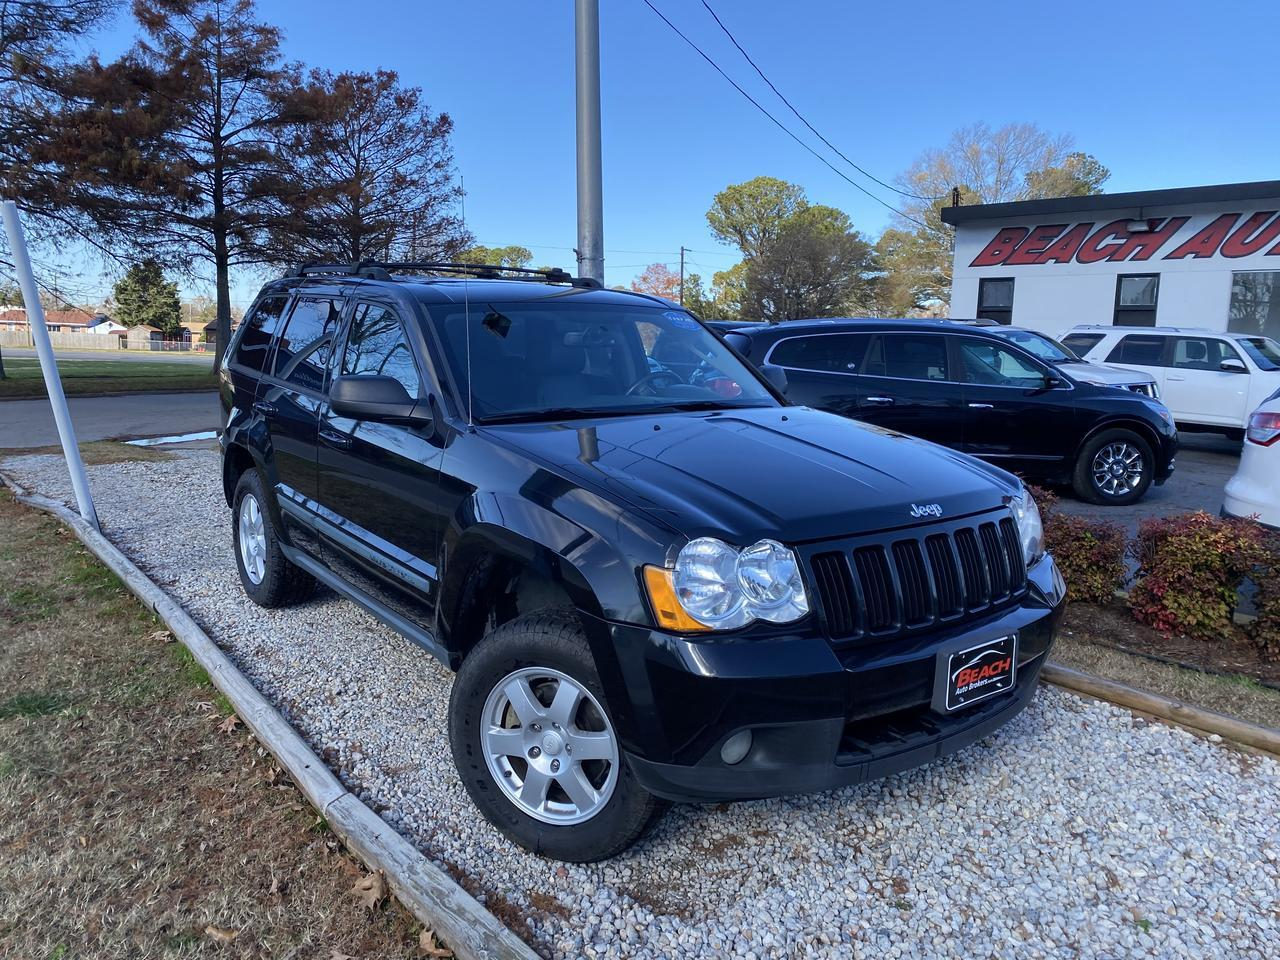 2009 JEEP` GRAND CHEROKEE LAREDO, WHOLESALE TO THE PUBLIC, LEATHER, BLUETOOTH, HEATED SEATS, SUNROOF!